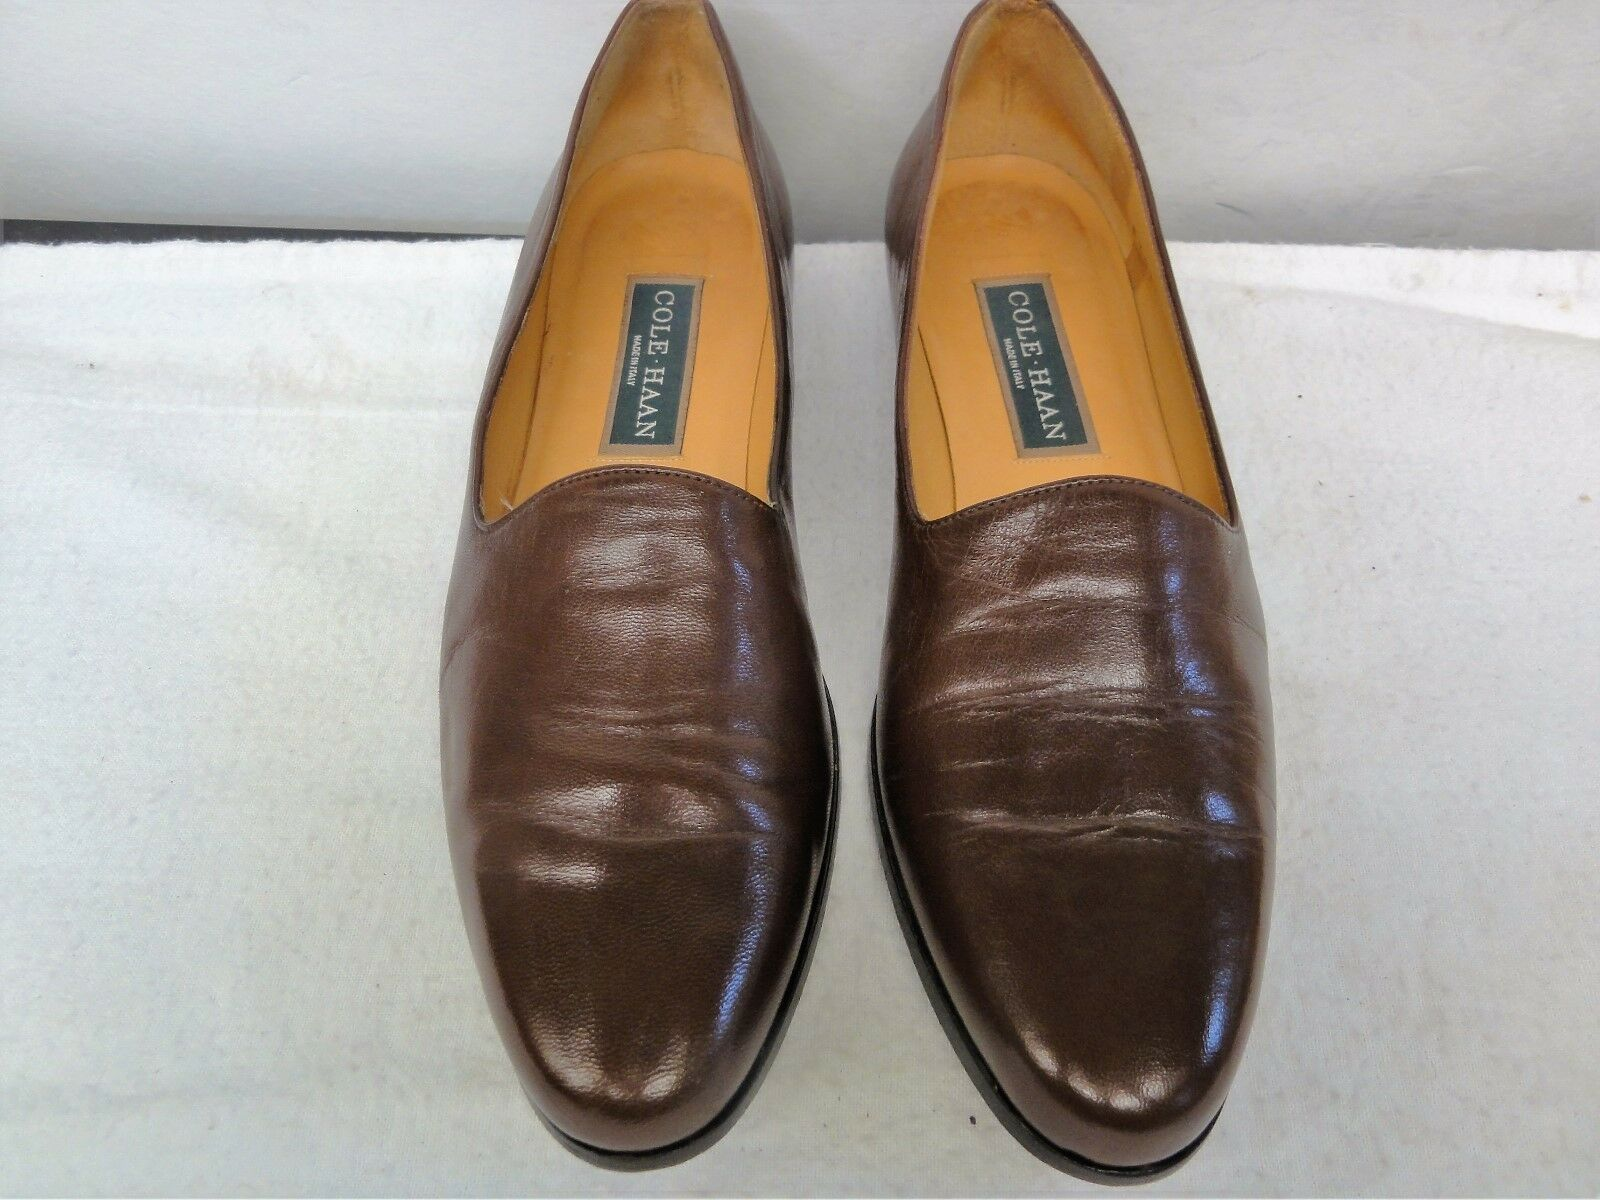 1e59a7605f72 Ladies pair of Cole brown size 8.5 AA loafers Haan noopms7219-Women s  Comfort Shoes